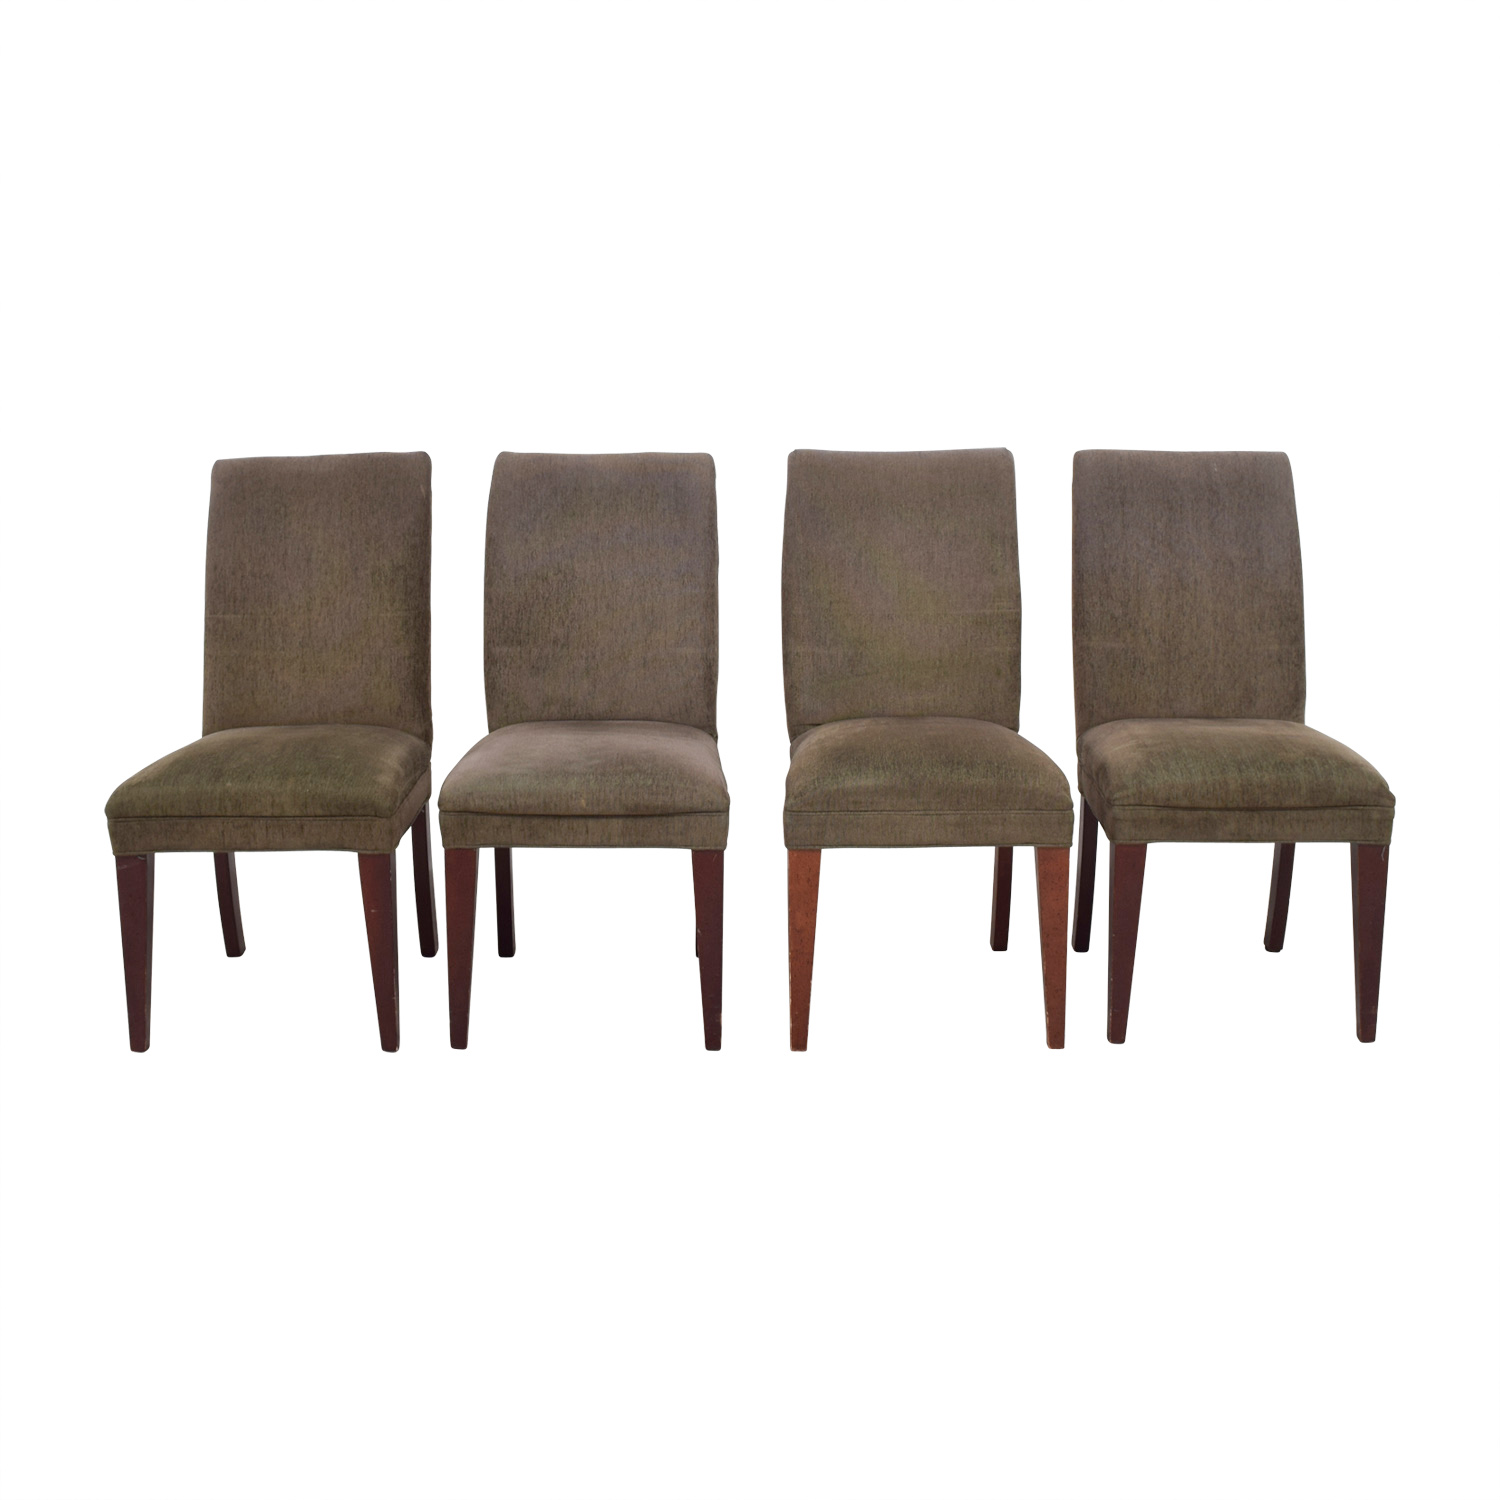 Restoration Hardware Dining Chairs 90 Off Restoration Hardware Restoration Hardware Olive Green